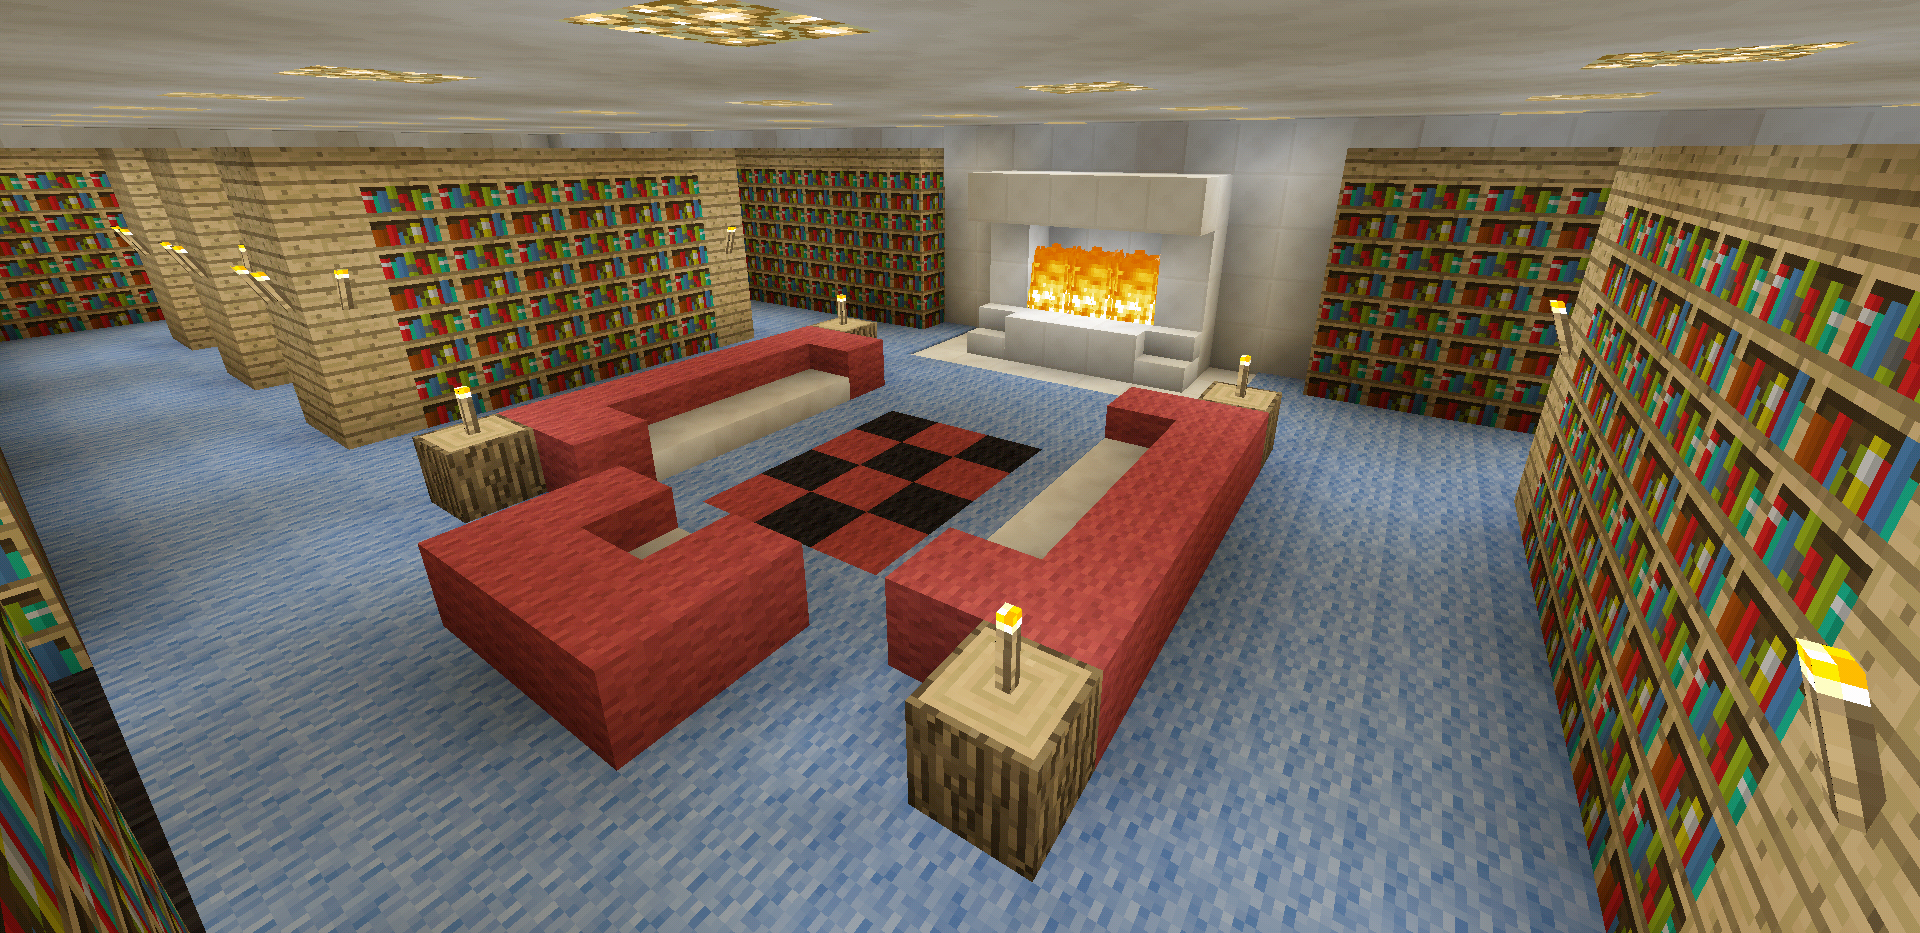 Minecraft Library Room House Fireplace Creations Home Decor ...